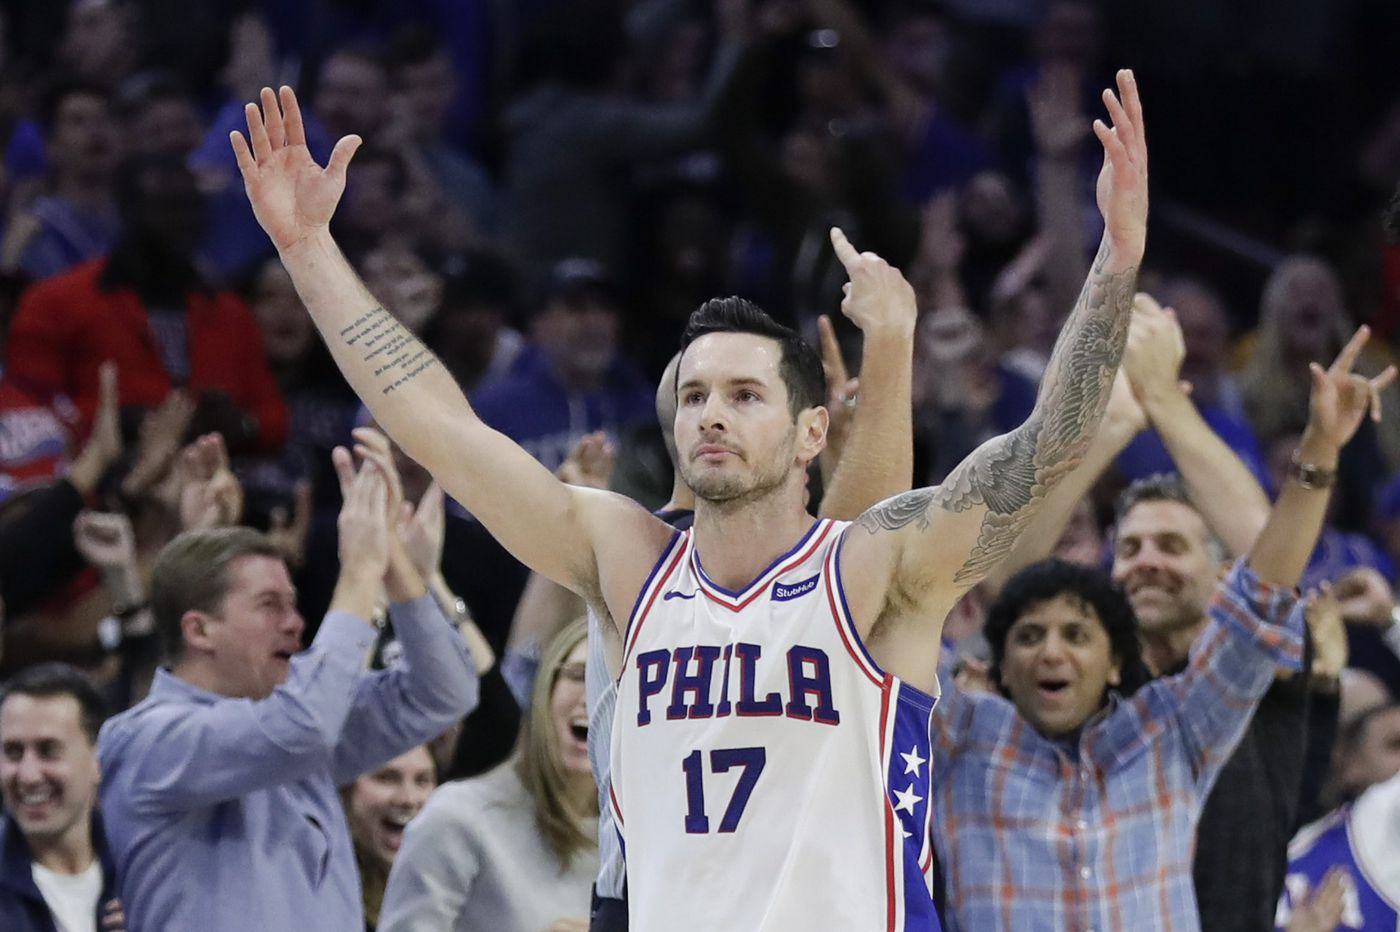 Sixers-Magic observations: Best and worst awards, Joel Embiid, JJ Redick, poor defensive communication